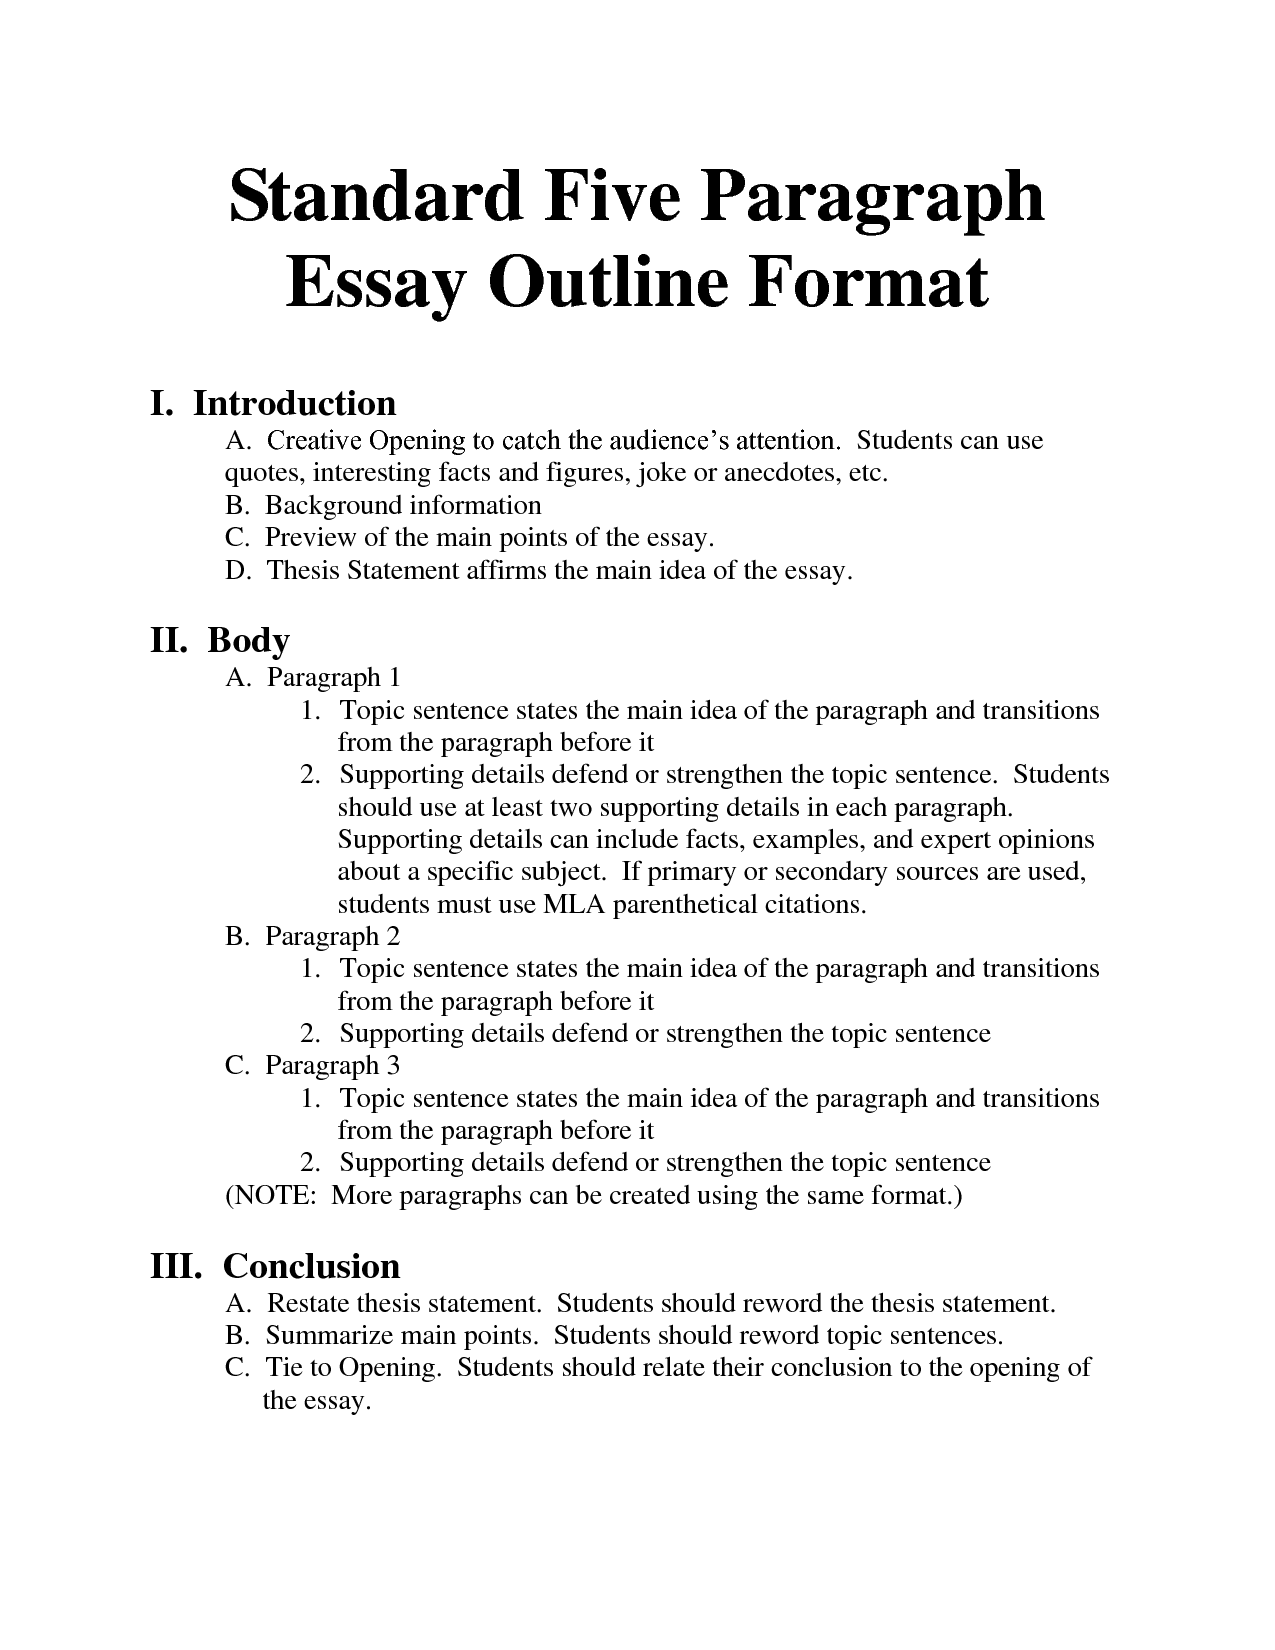 outlines for essays examples Quote/concrete details - a specific example from the work used to provide evidence for your topic sentence/support thesis iv commentary - your explanation and interpretation of the concrete detail outline structure for literary analysis essay.